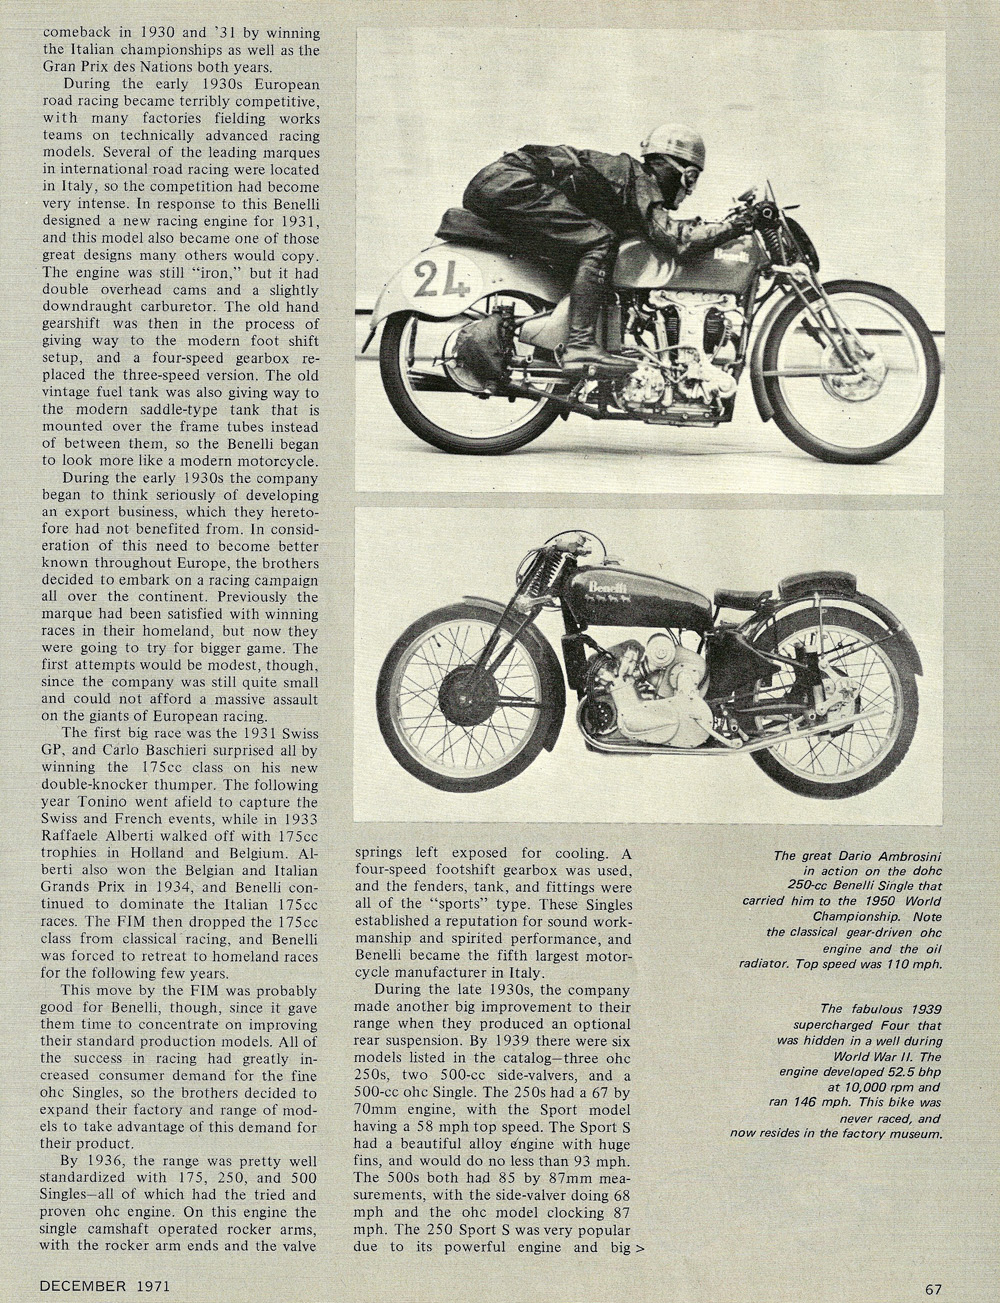 1971 History of Benelli 03.jpg